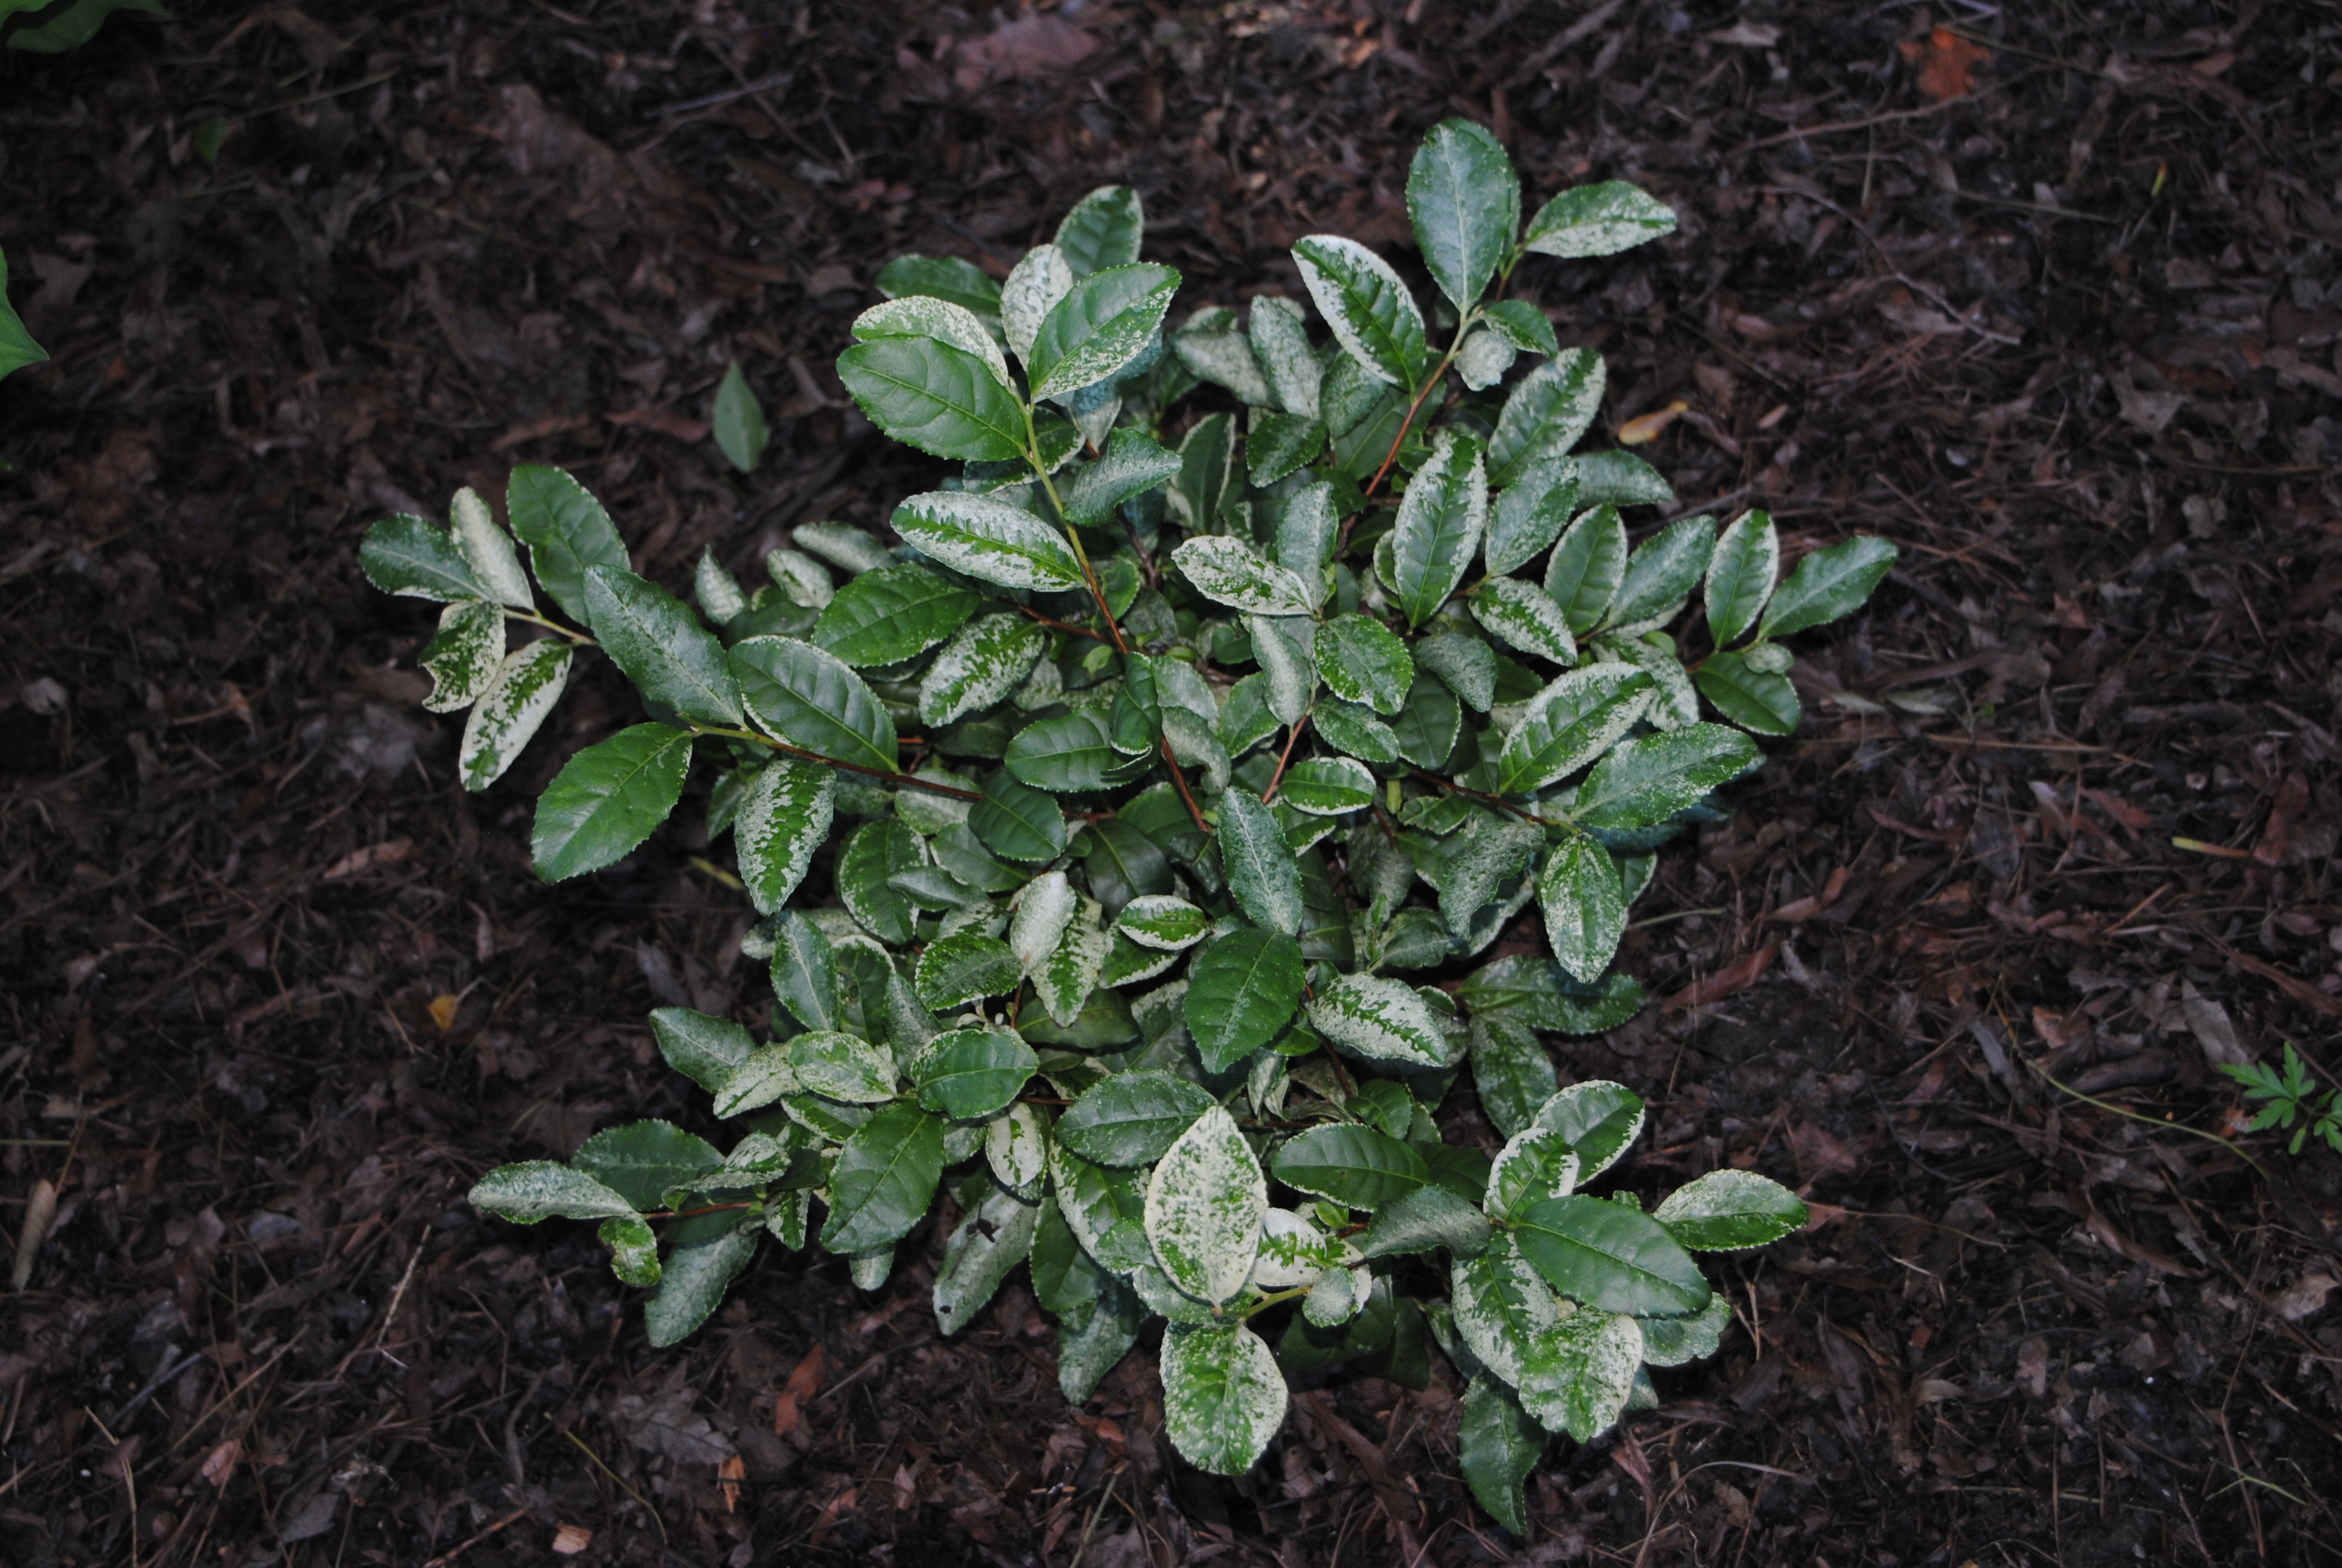 Speckled variegation on this shade-loving plant really brightens up a dim spot.